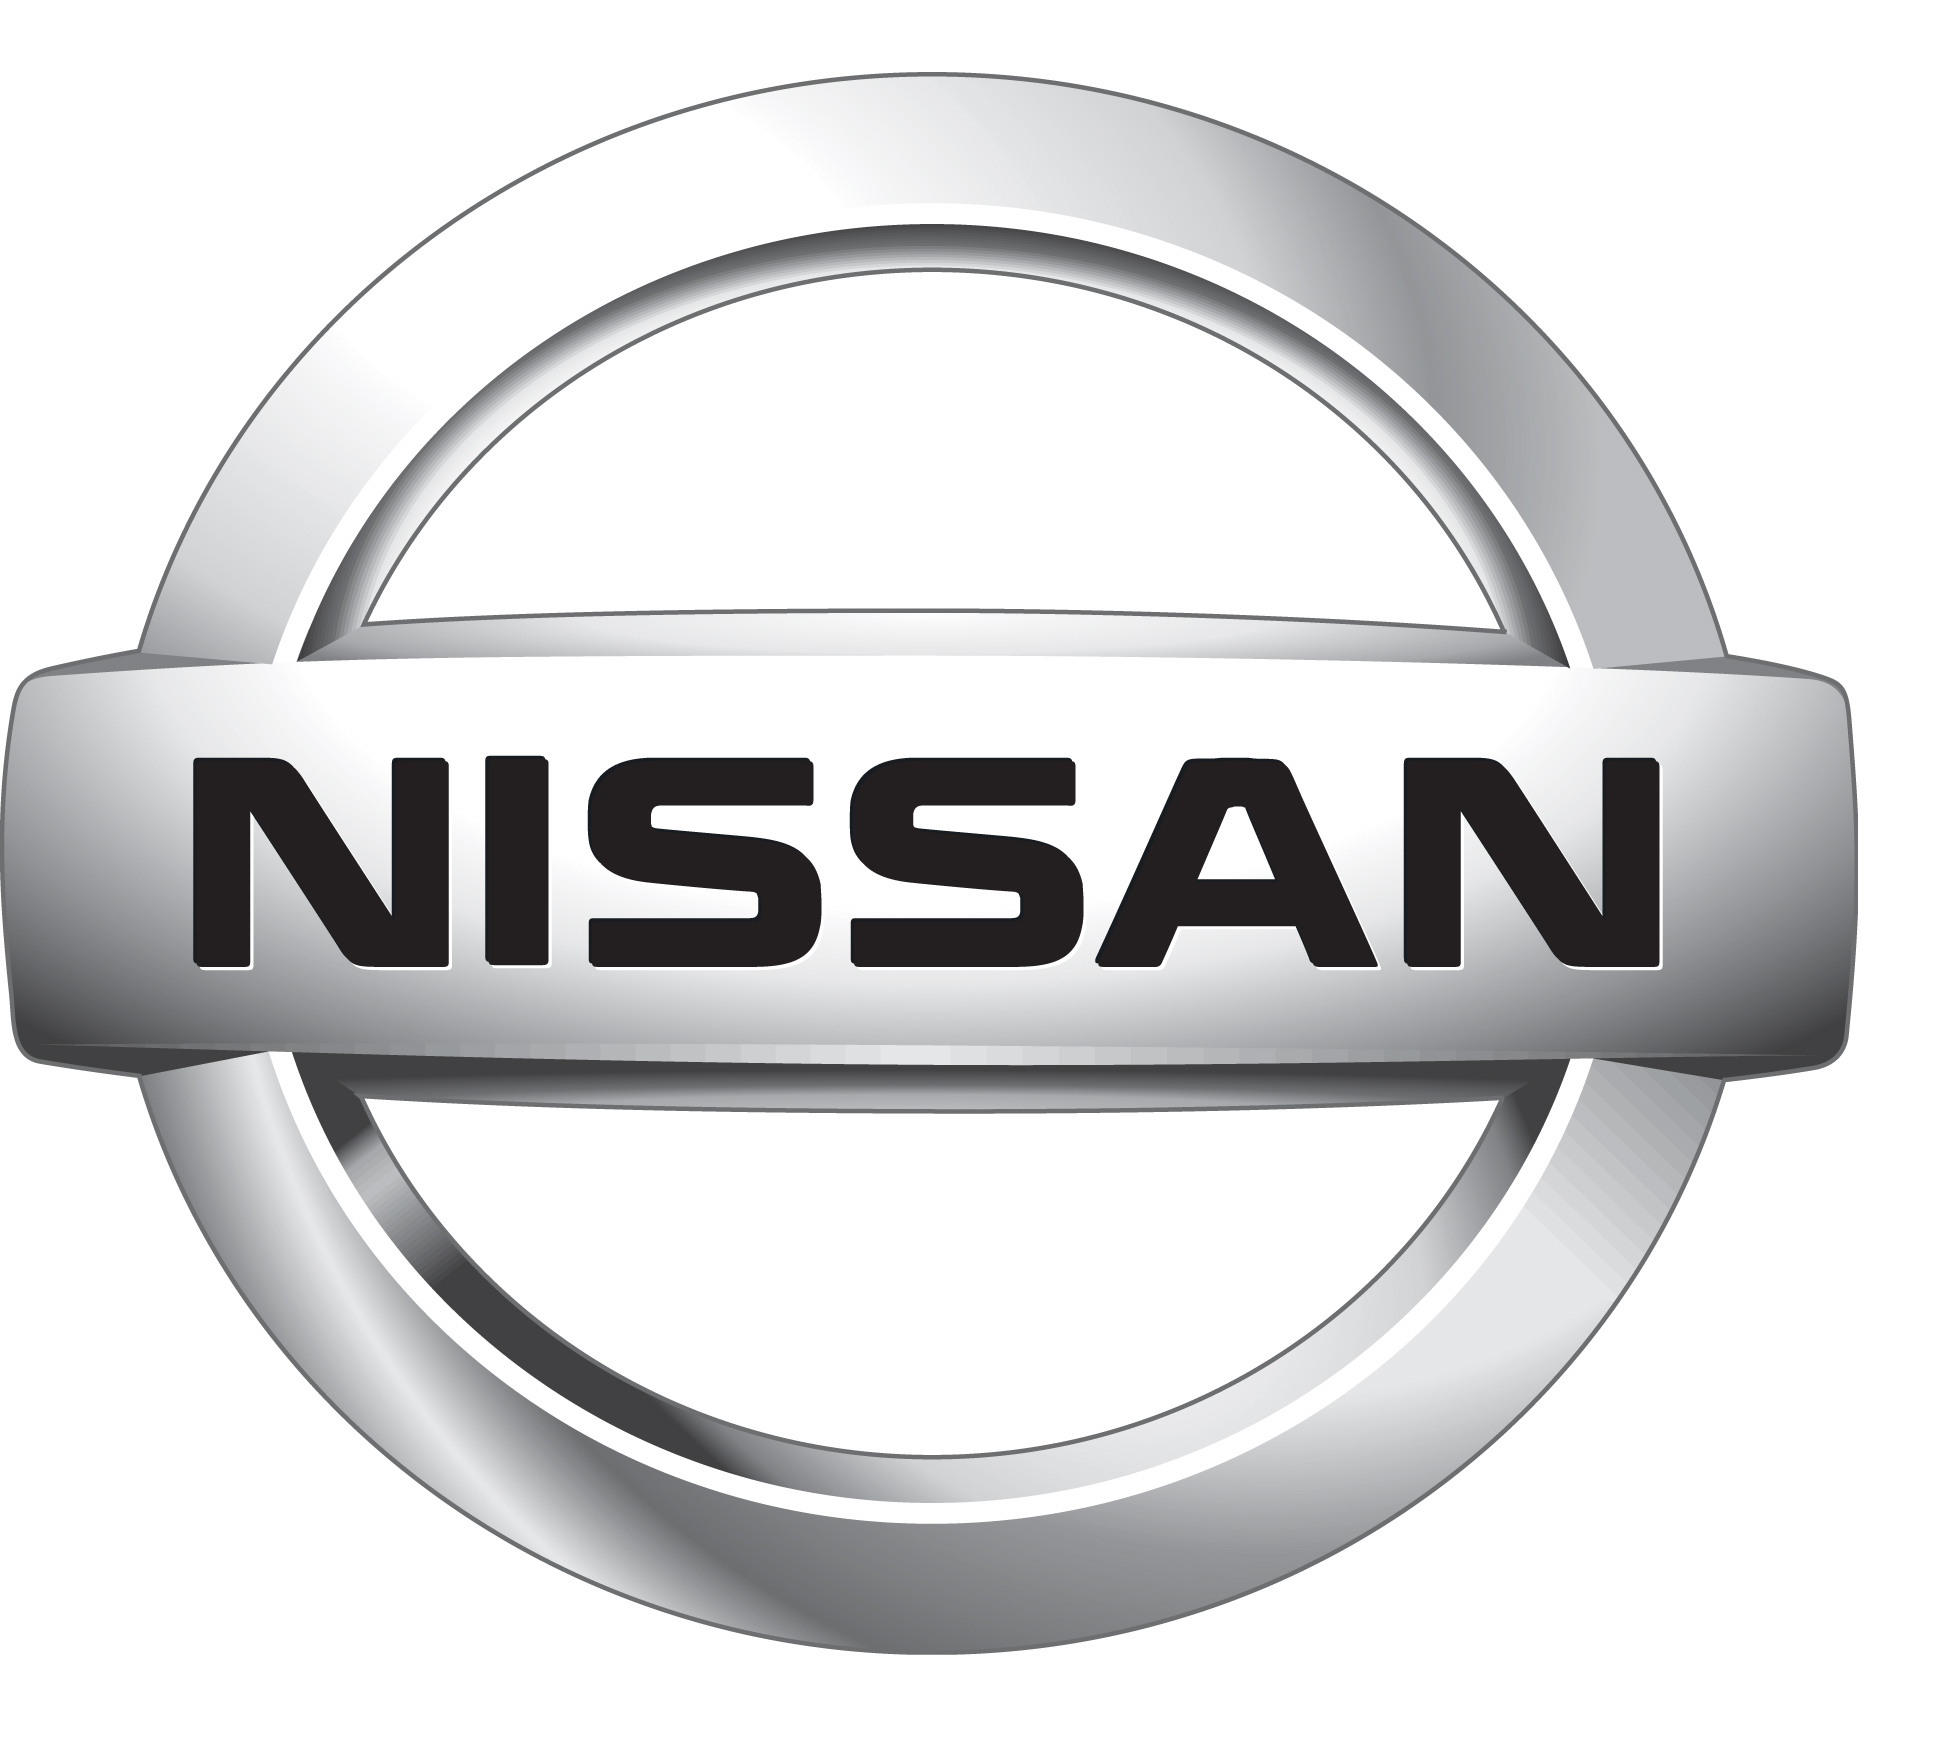 nissan-logo-AT-1